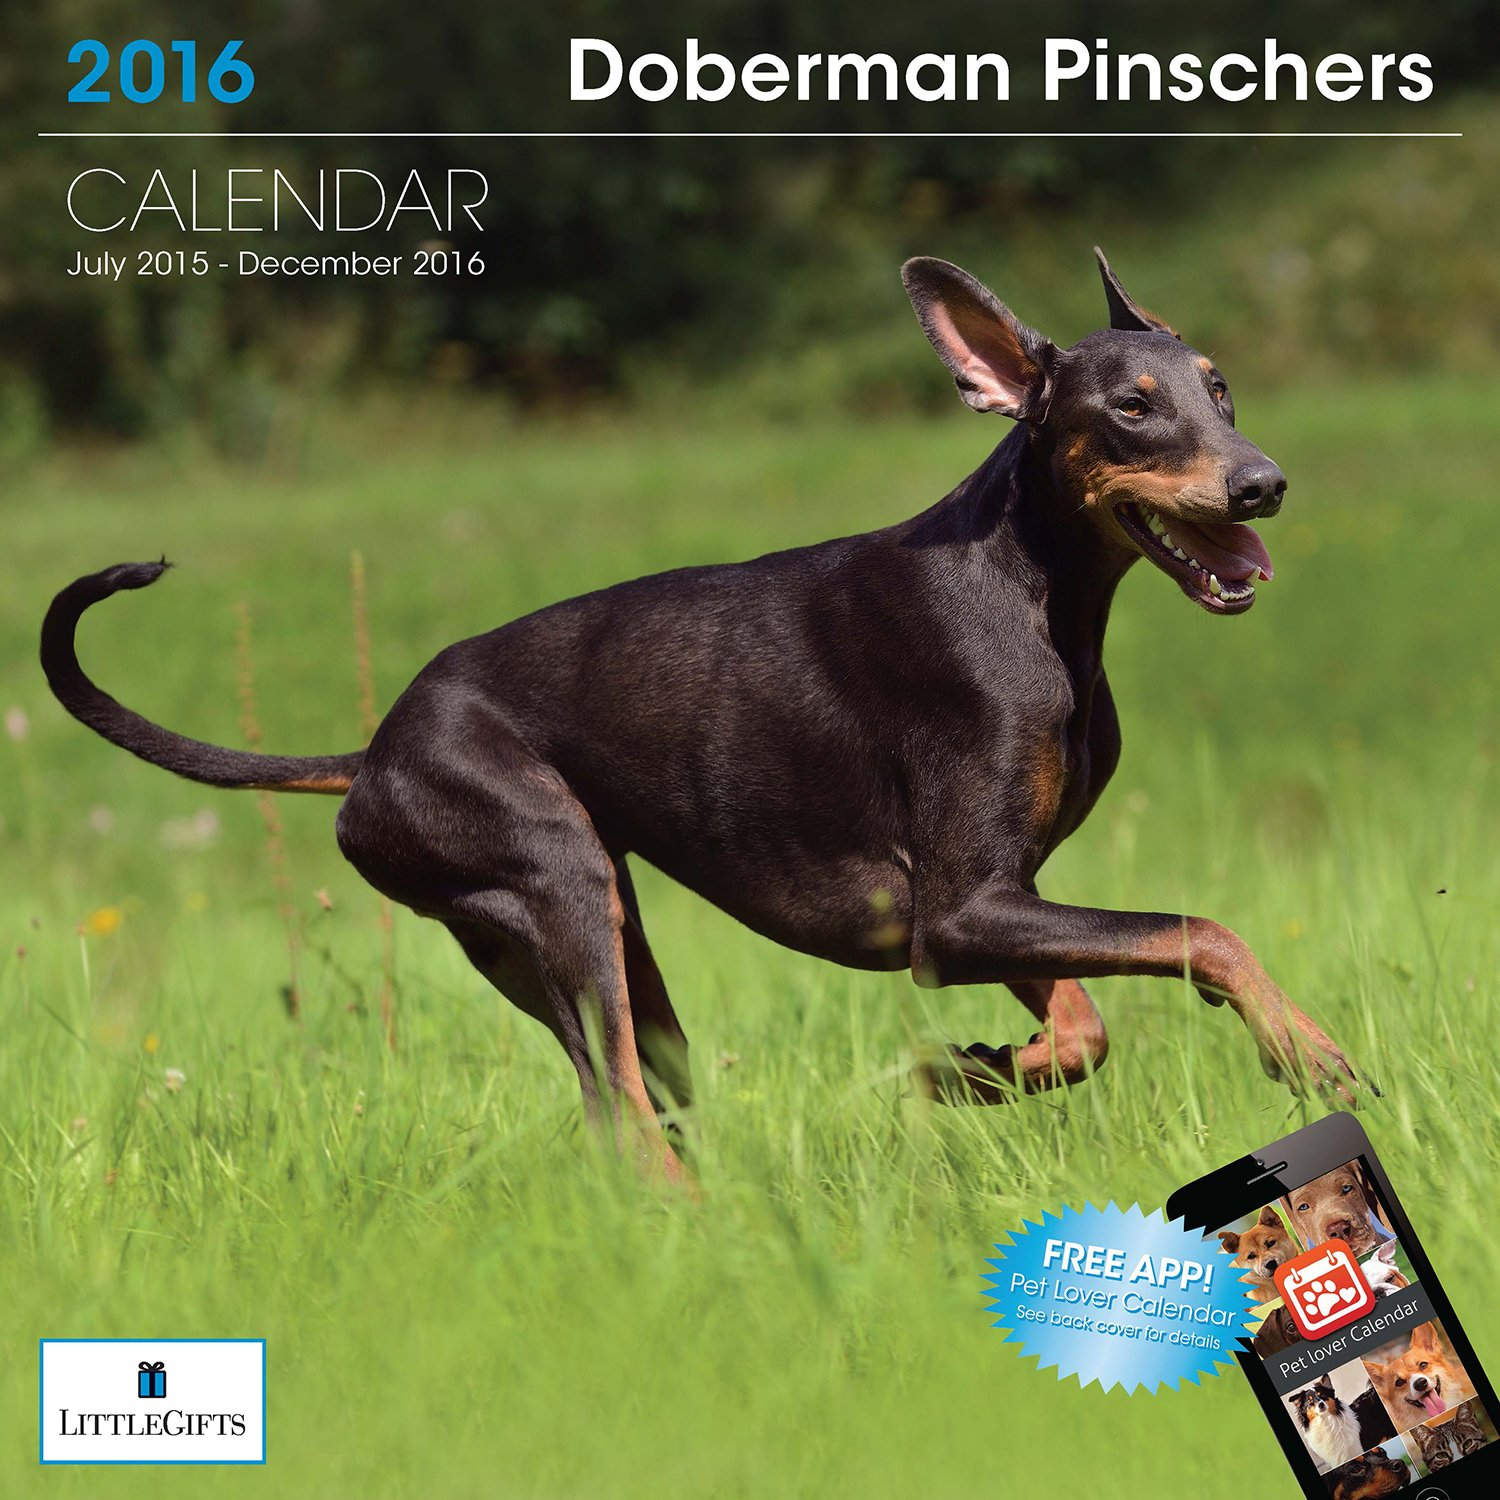 LittleGifts 2016 Doberman calendario (1239) (1239) calendario c0ad7e